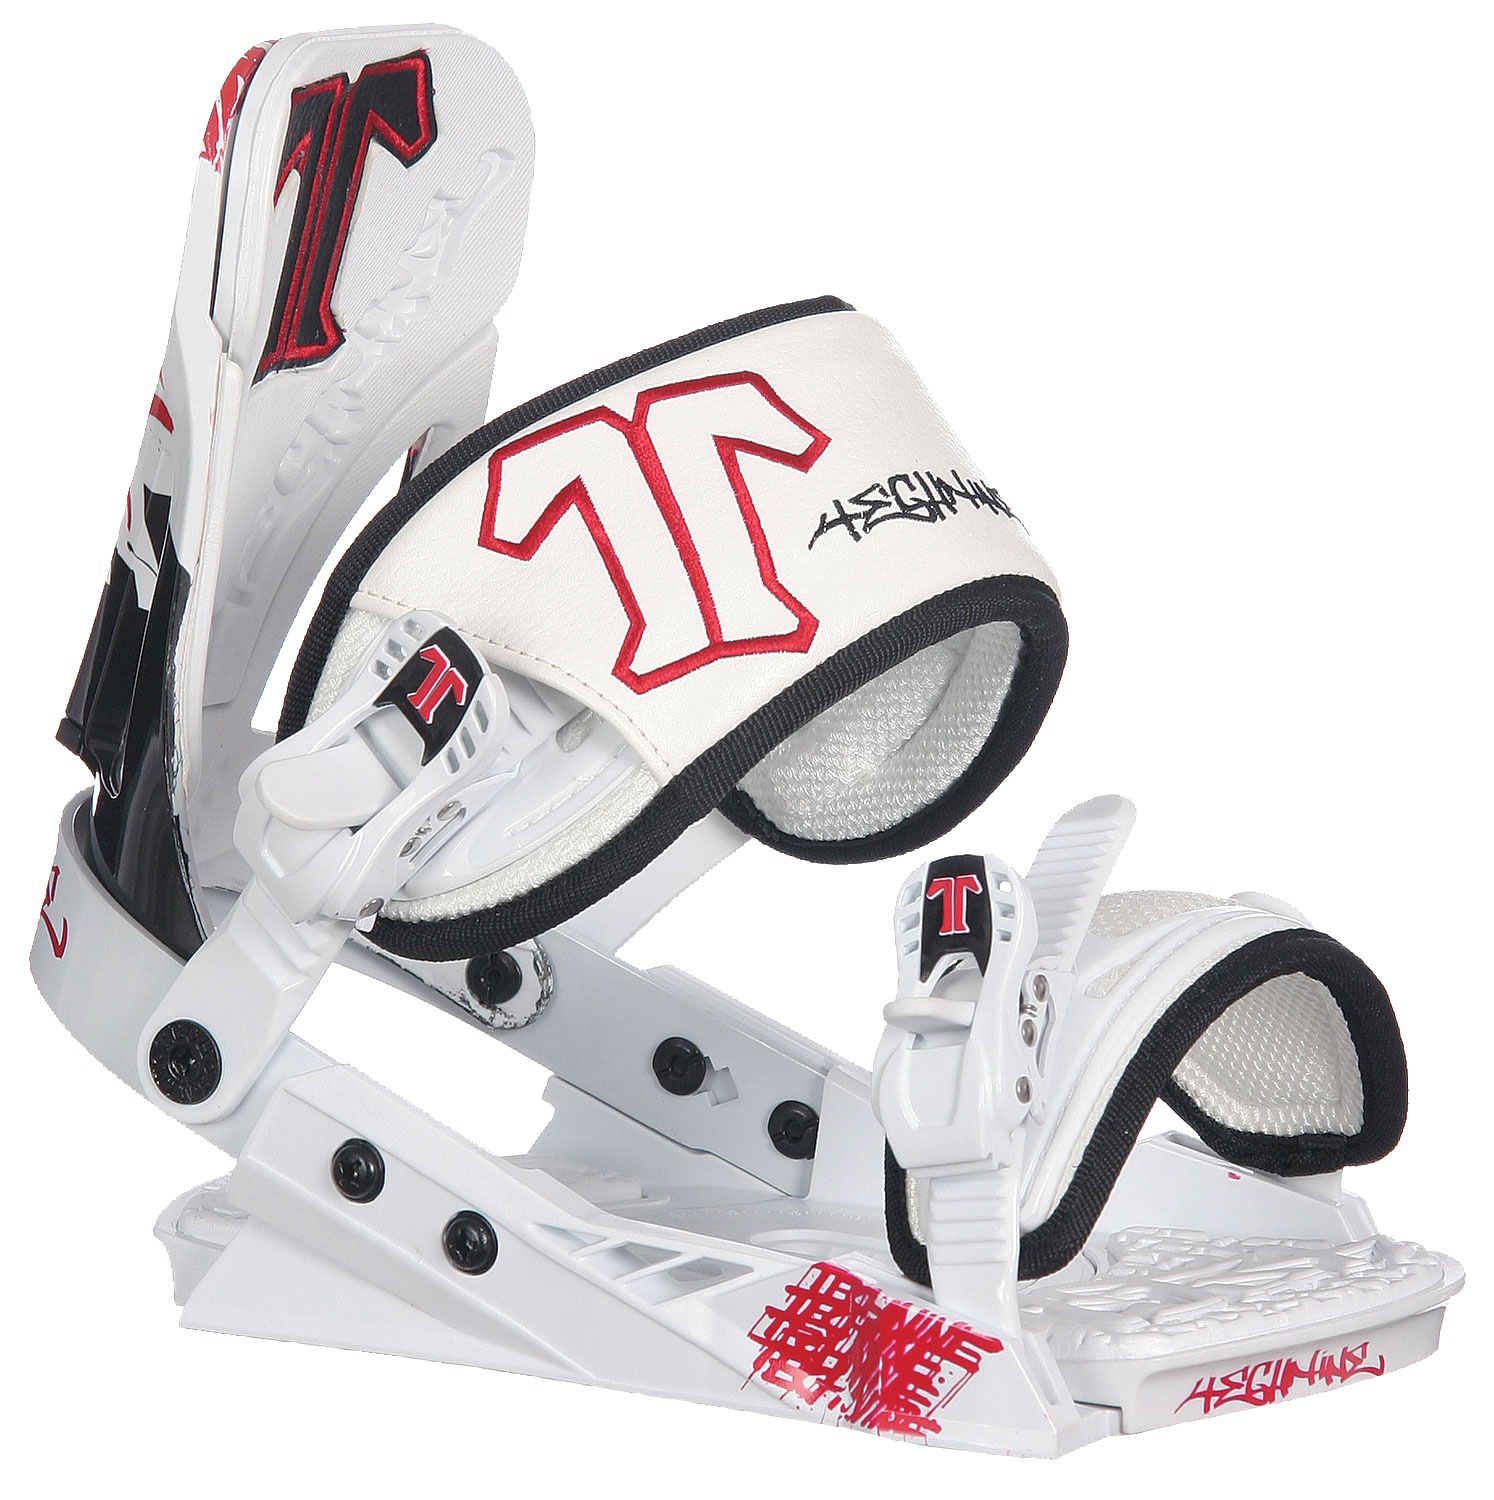 Snowboard The Techine Mass Appeal Snowboard Bindings will be a perfect addition to any snowboard. The Bindings are available in 3 different colors, so it coordinates perfectly with any snowboard. They are great bindings that are very durable. They work great for riding all over the park and the bindings have an adjustable high back should you need it! Thechine offers features that are on high end binding but in the low end price range. They also are a company that offers a lifetime warranty.Key Features of The Technine Mass Appeal Snowboard Binding: Combo Baseplate with Heel and Toe Ramps Adjustable Toe Ramps Molded Highback, Toe & Heel Ramp, Toe & Ankle Pads Sleek Fully Adjustable 6061-T6 Heelcup Classic Baltimore Toe Strap with Molded Padding New Adjustable Highback Adjust 2cm in Height with Independent Forward Lean Adjustment Tool Free Toe Adjustment Tool Free Ankle and Toe Strap Adjustment Cast Aluminum Ankle & Toe Ratchets with Custom Rubber Logo Grips - $72.95